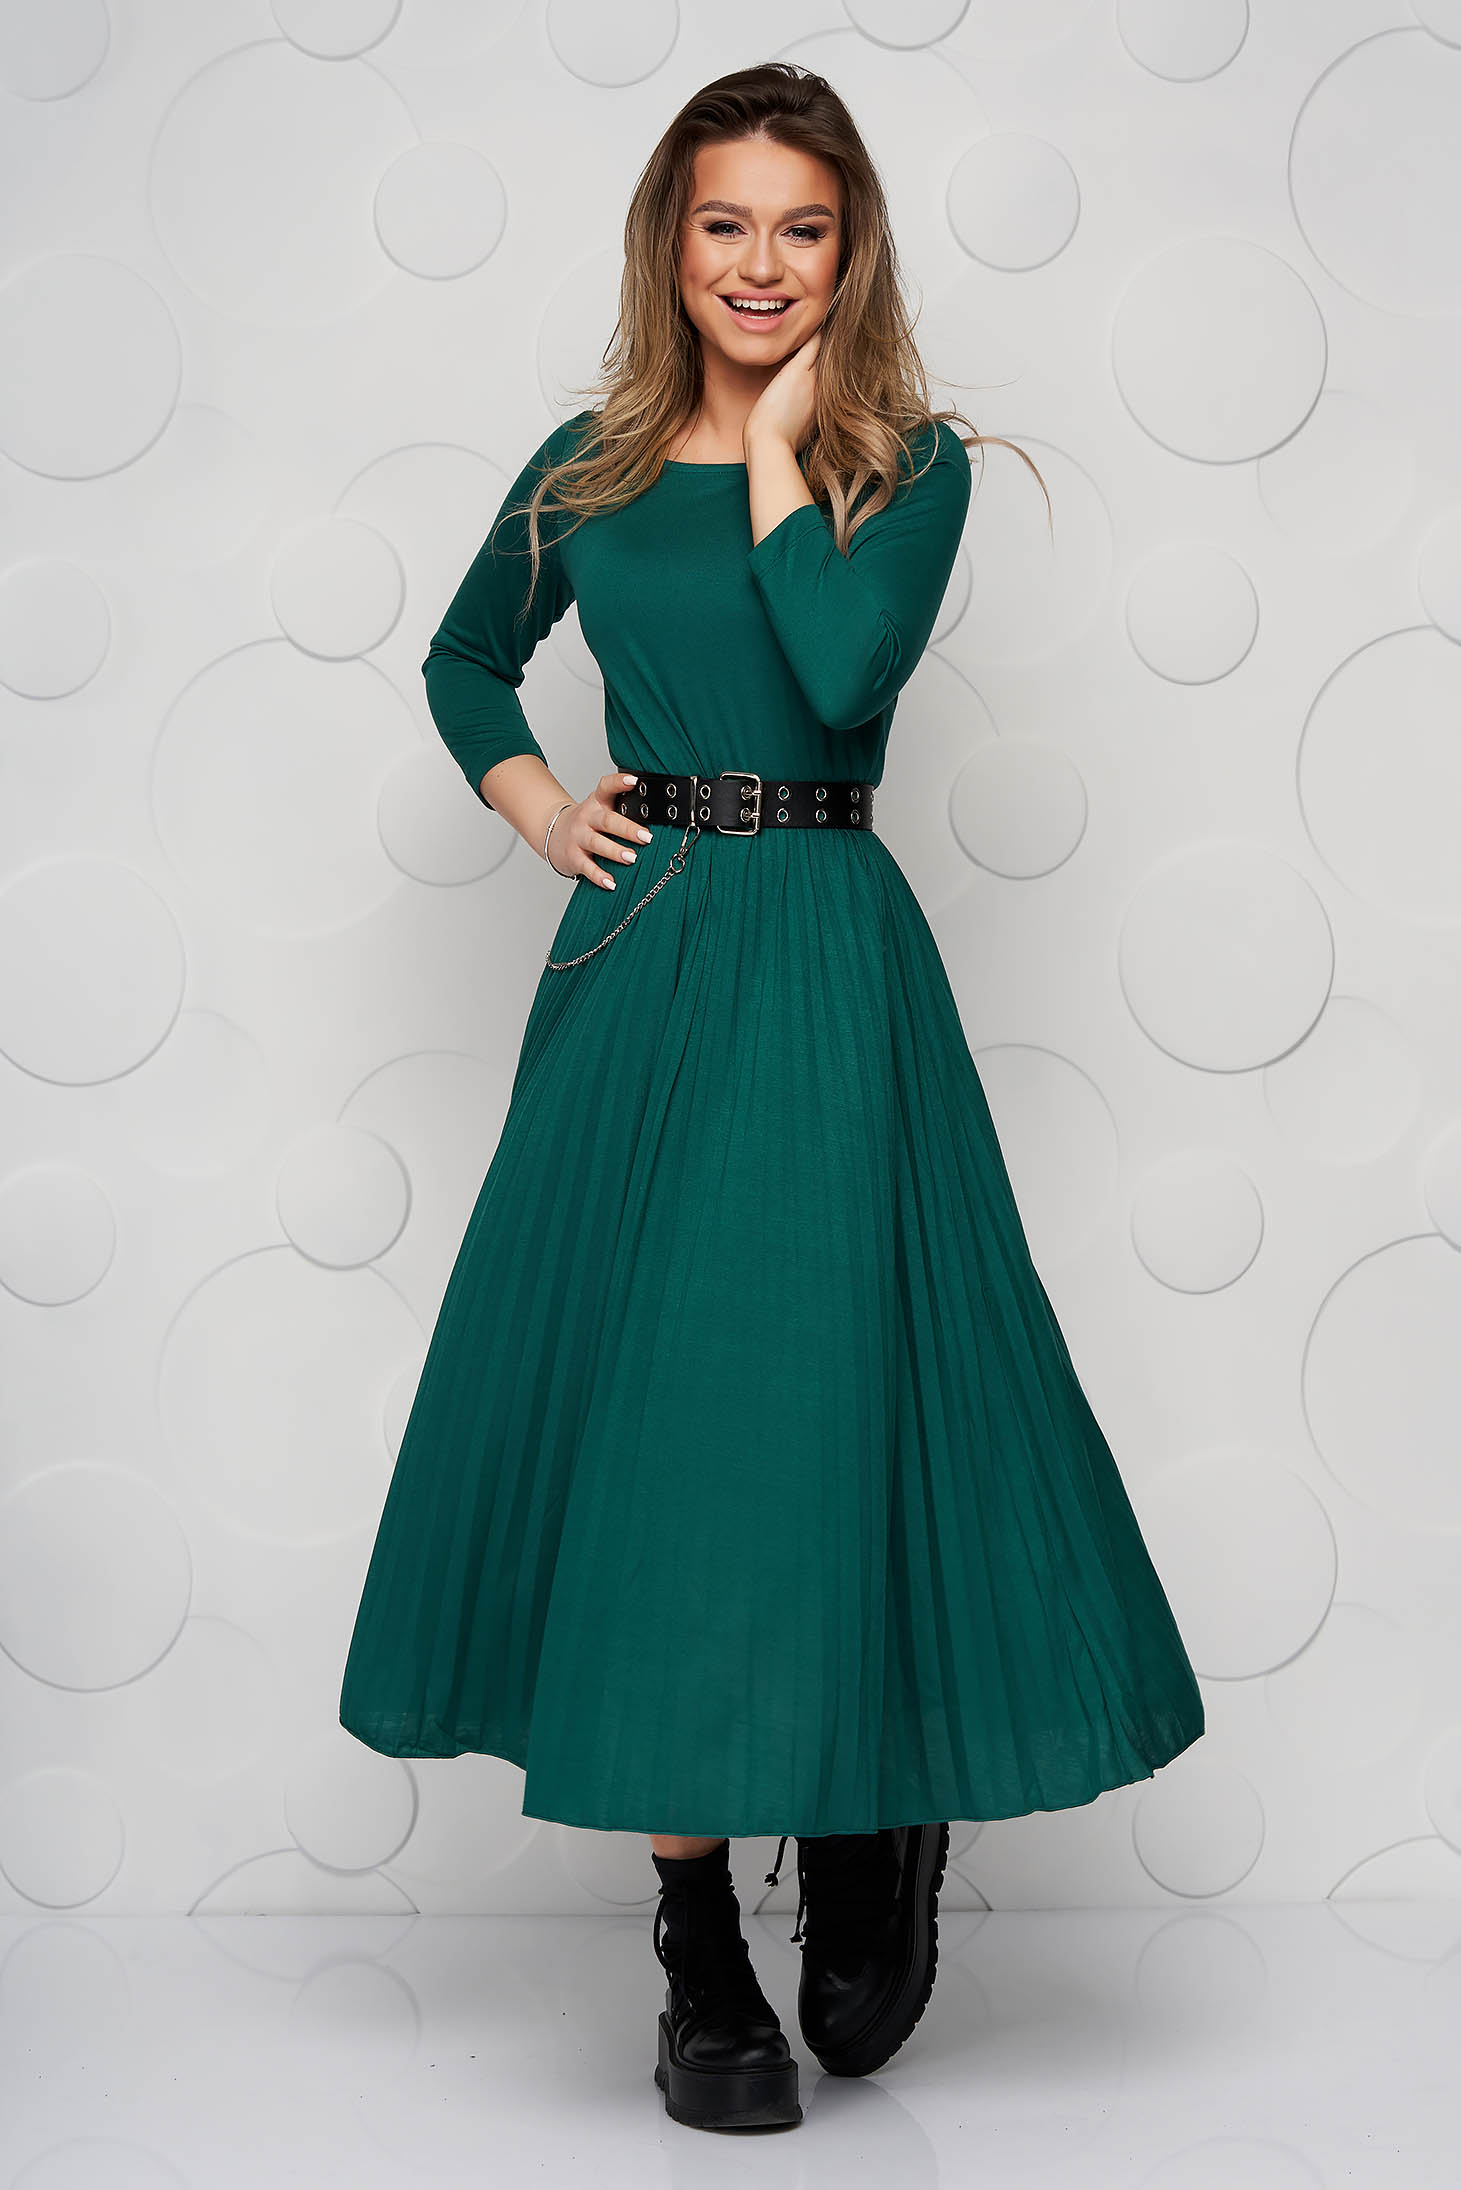 Green dress midi cloche with 3/4 sleeves folded up